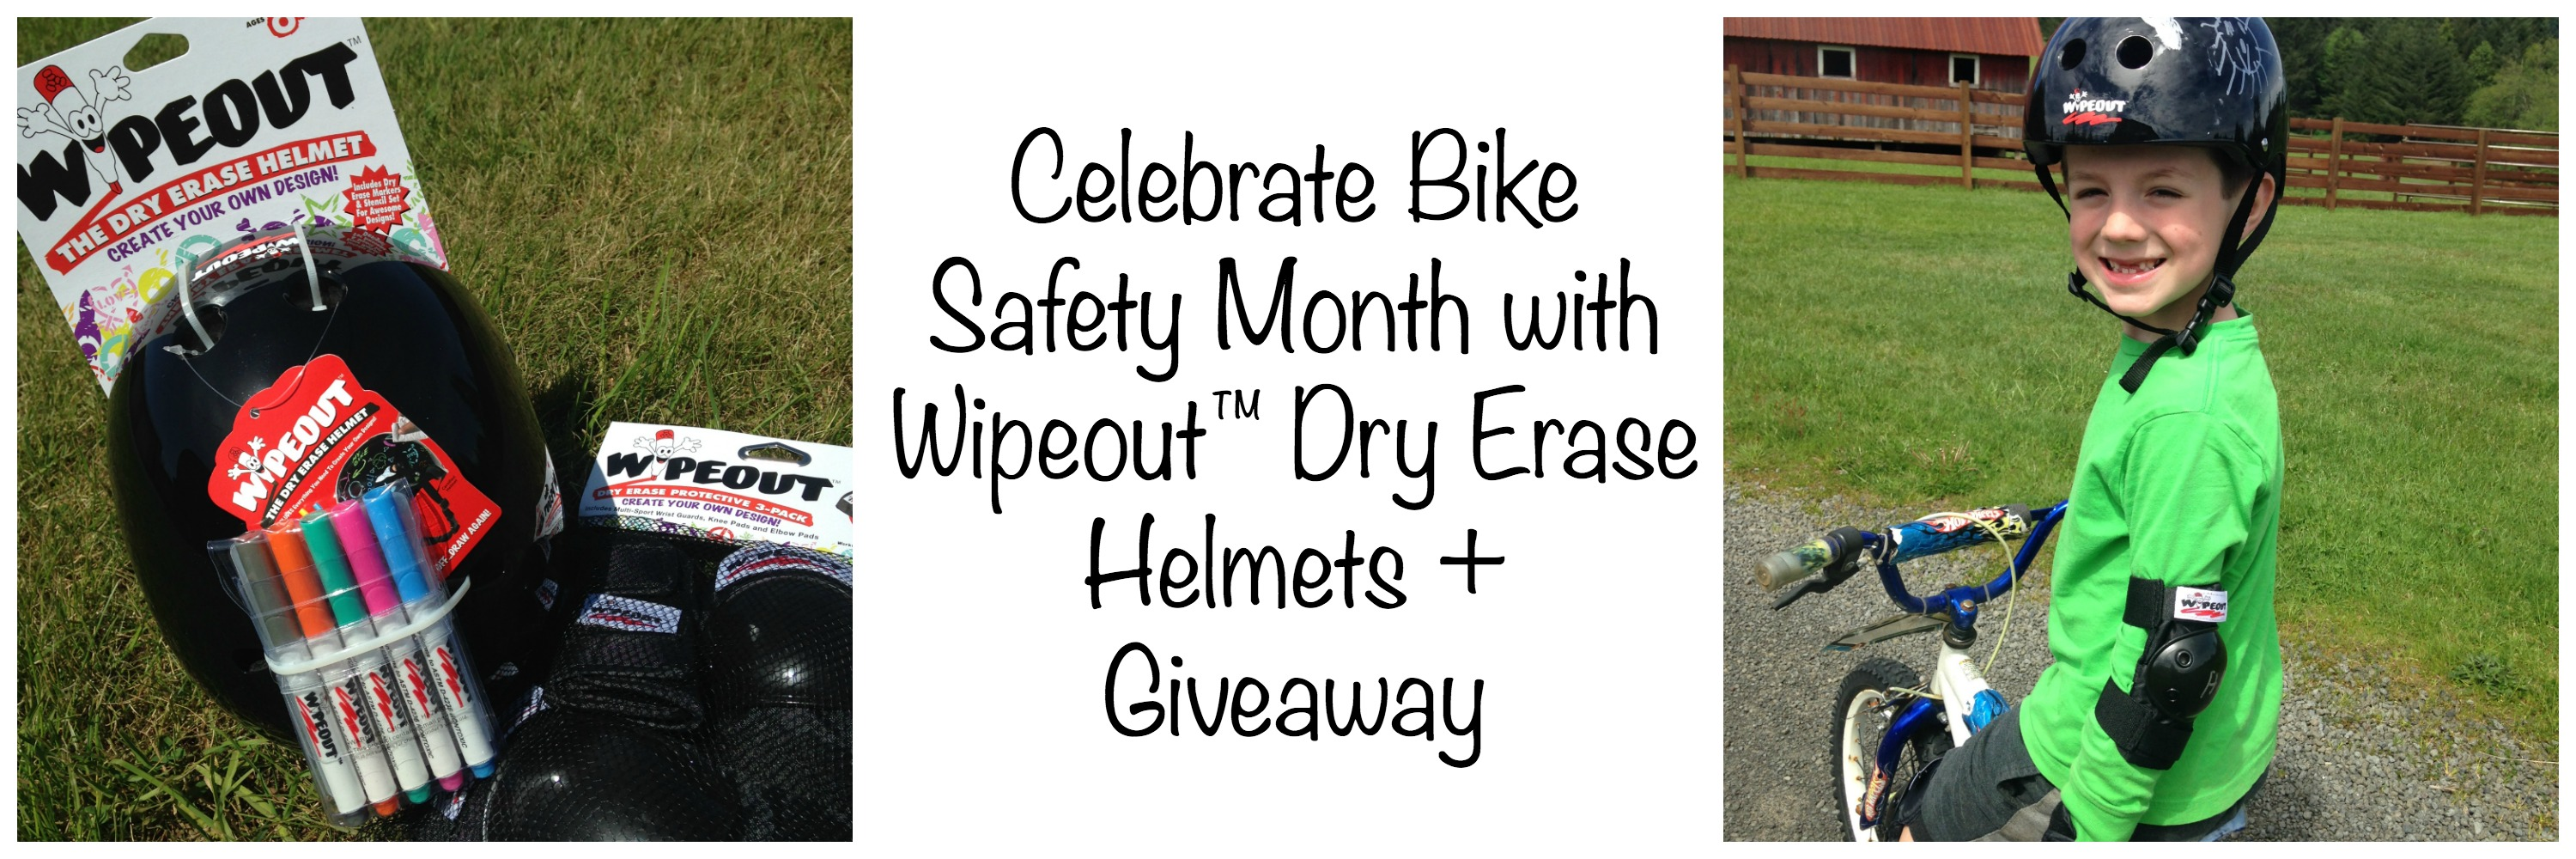 Celebrate Bike Safety Month With Wipeout Dry Erase